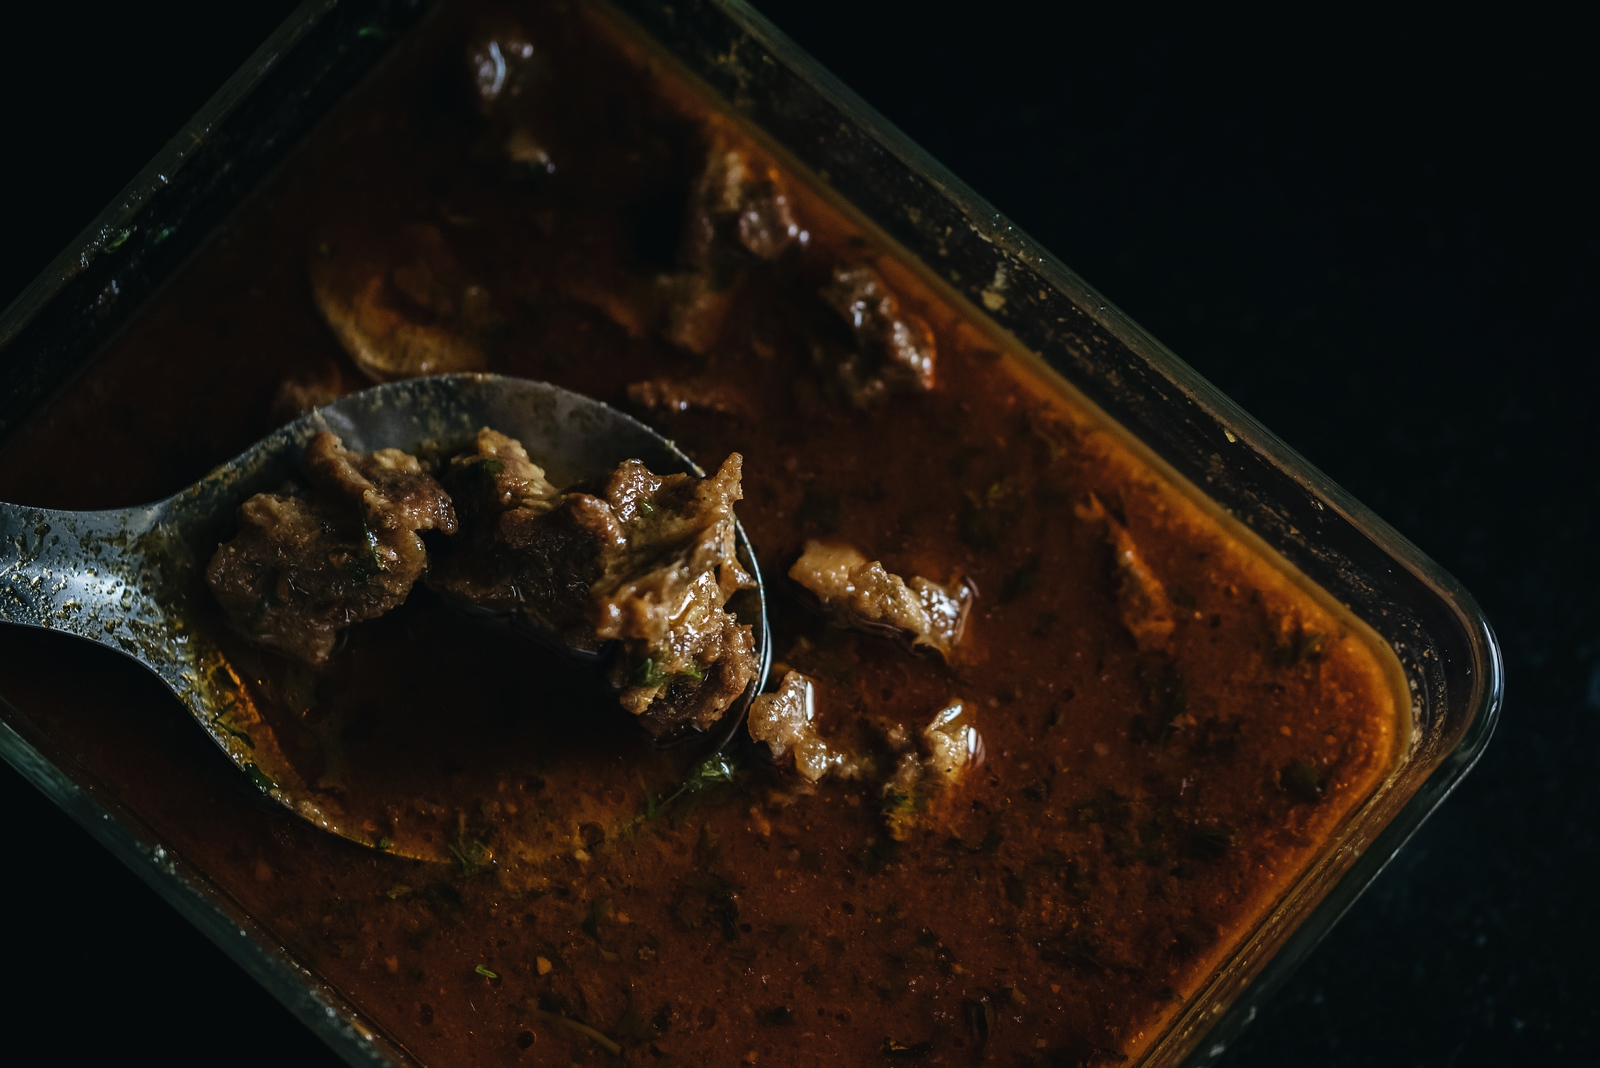 Home made mutton